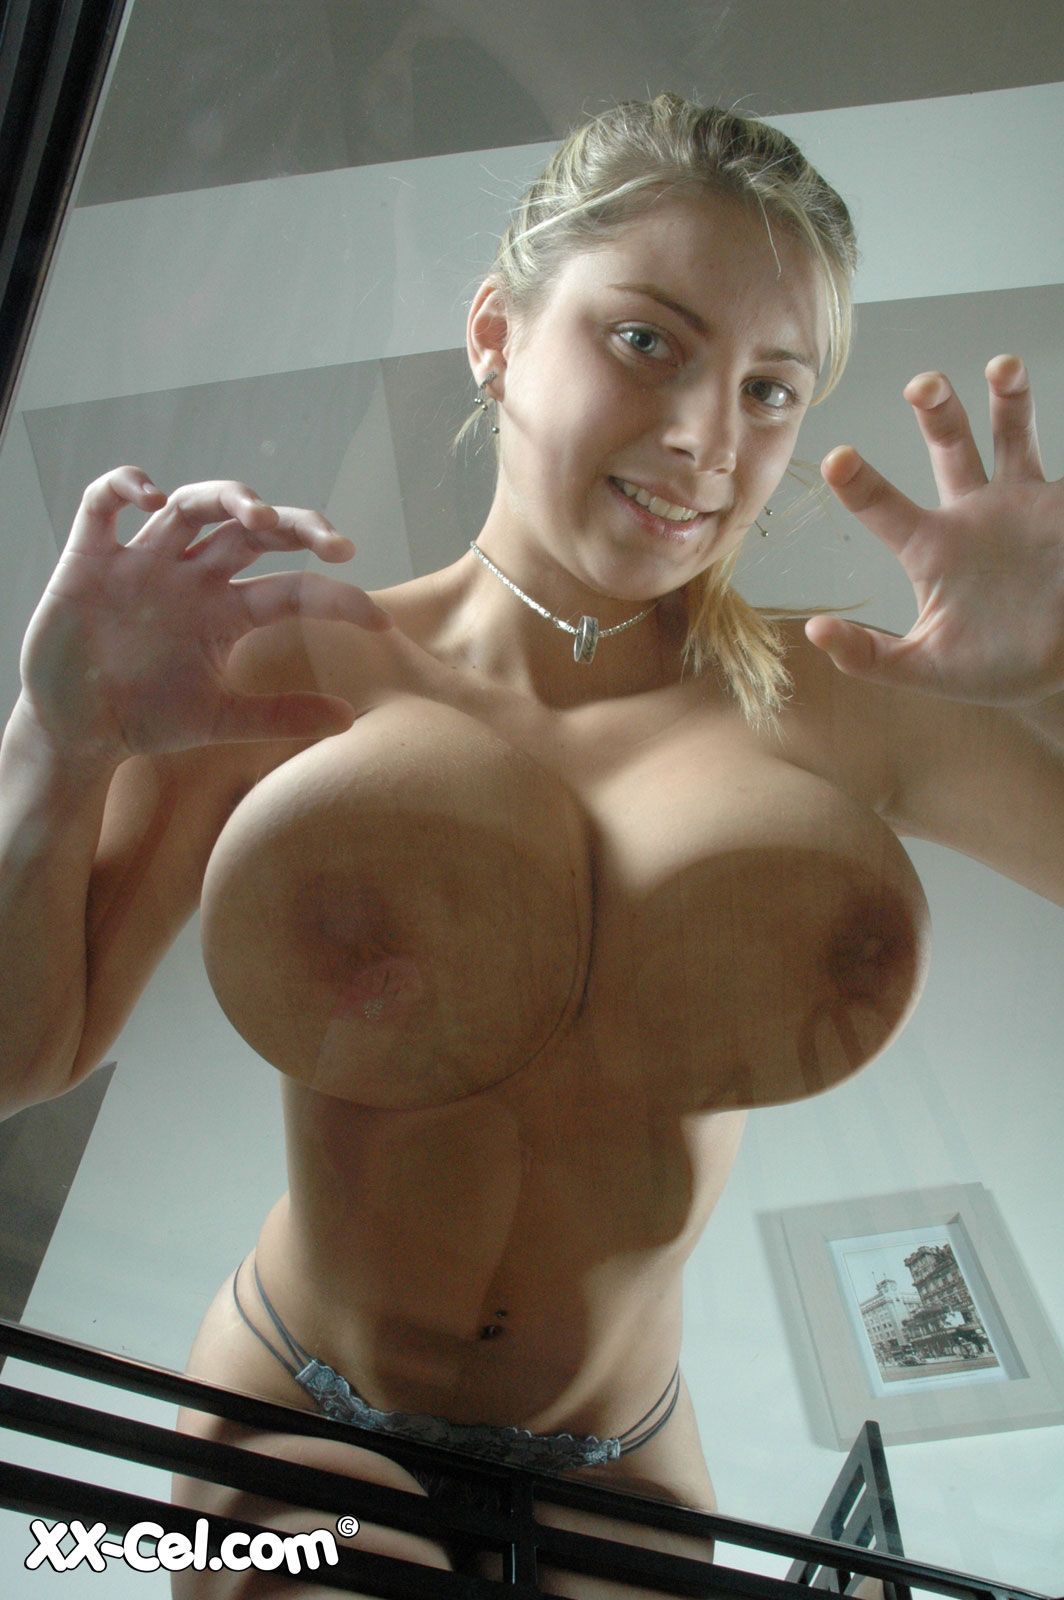 Sexy Big Tits Pressed Against Glass  Hot Girl Hd Wallpaper-2870